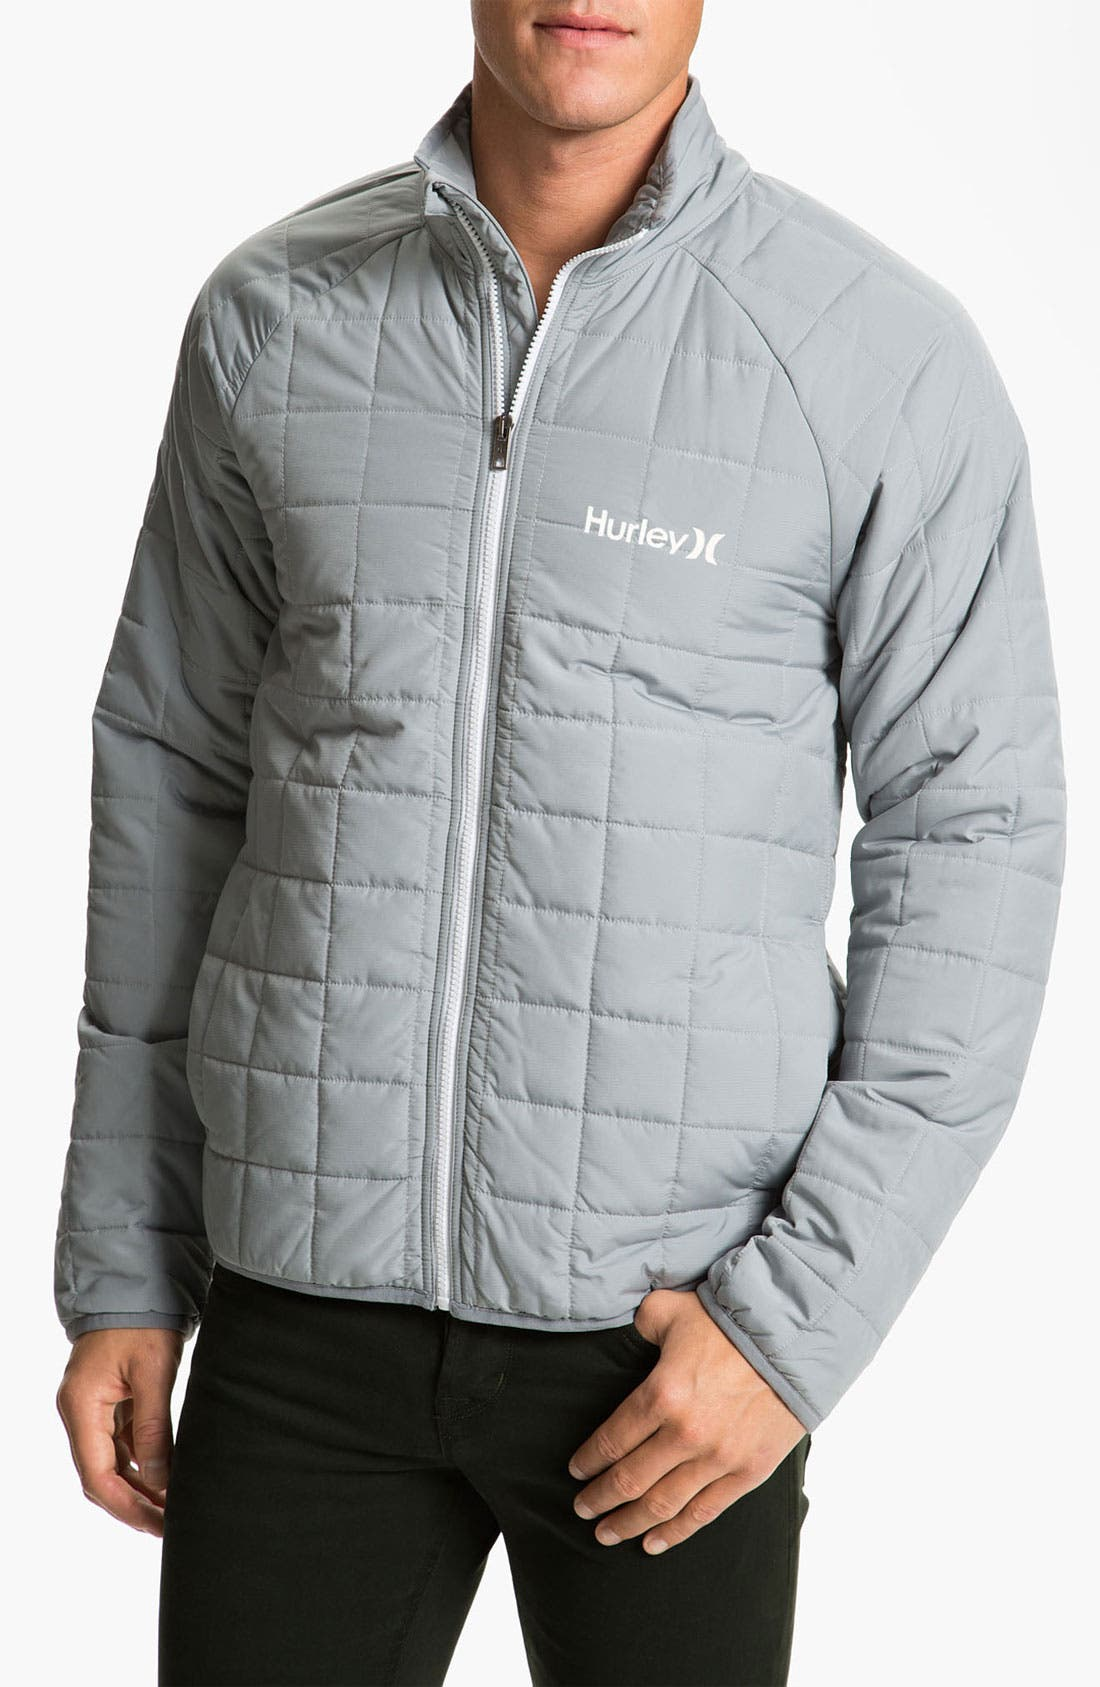 Main Image - Hurley 'Outer Edge' Jacket